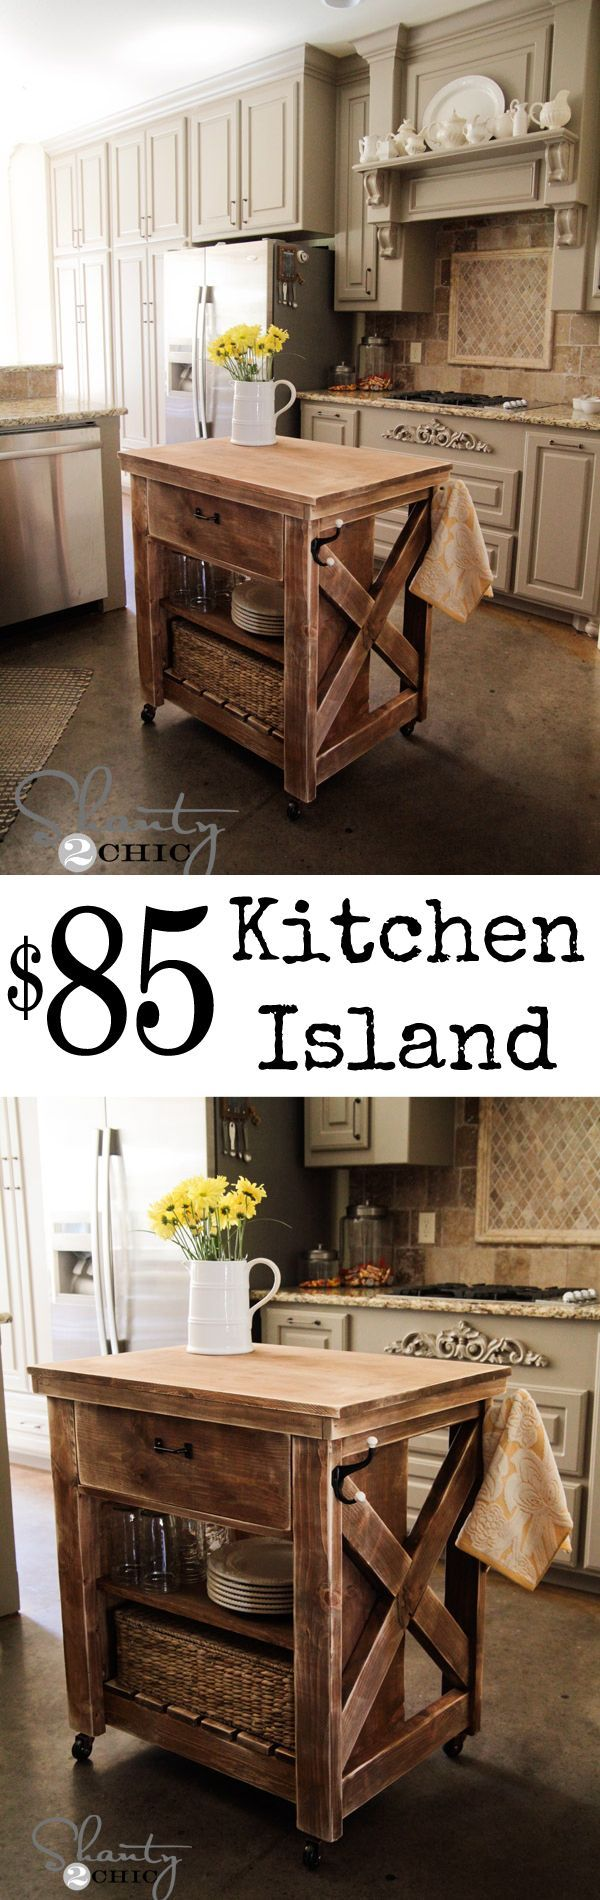 Diy kitchen island inspired by pottery barn love this and the price